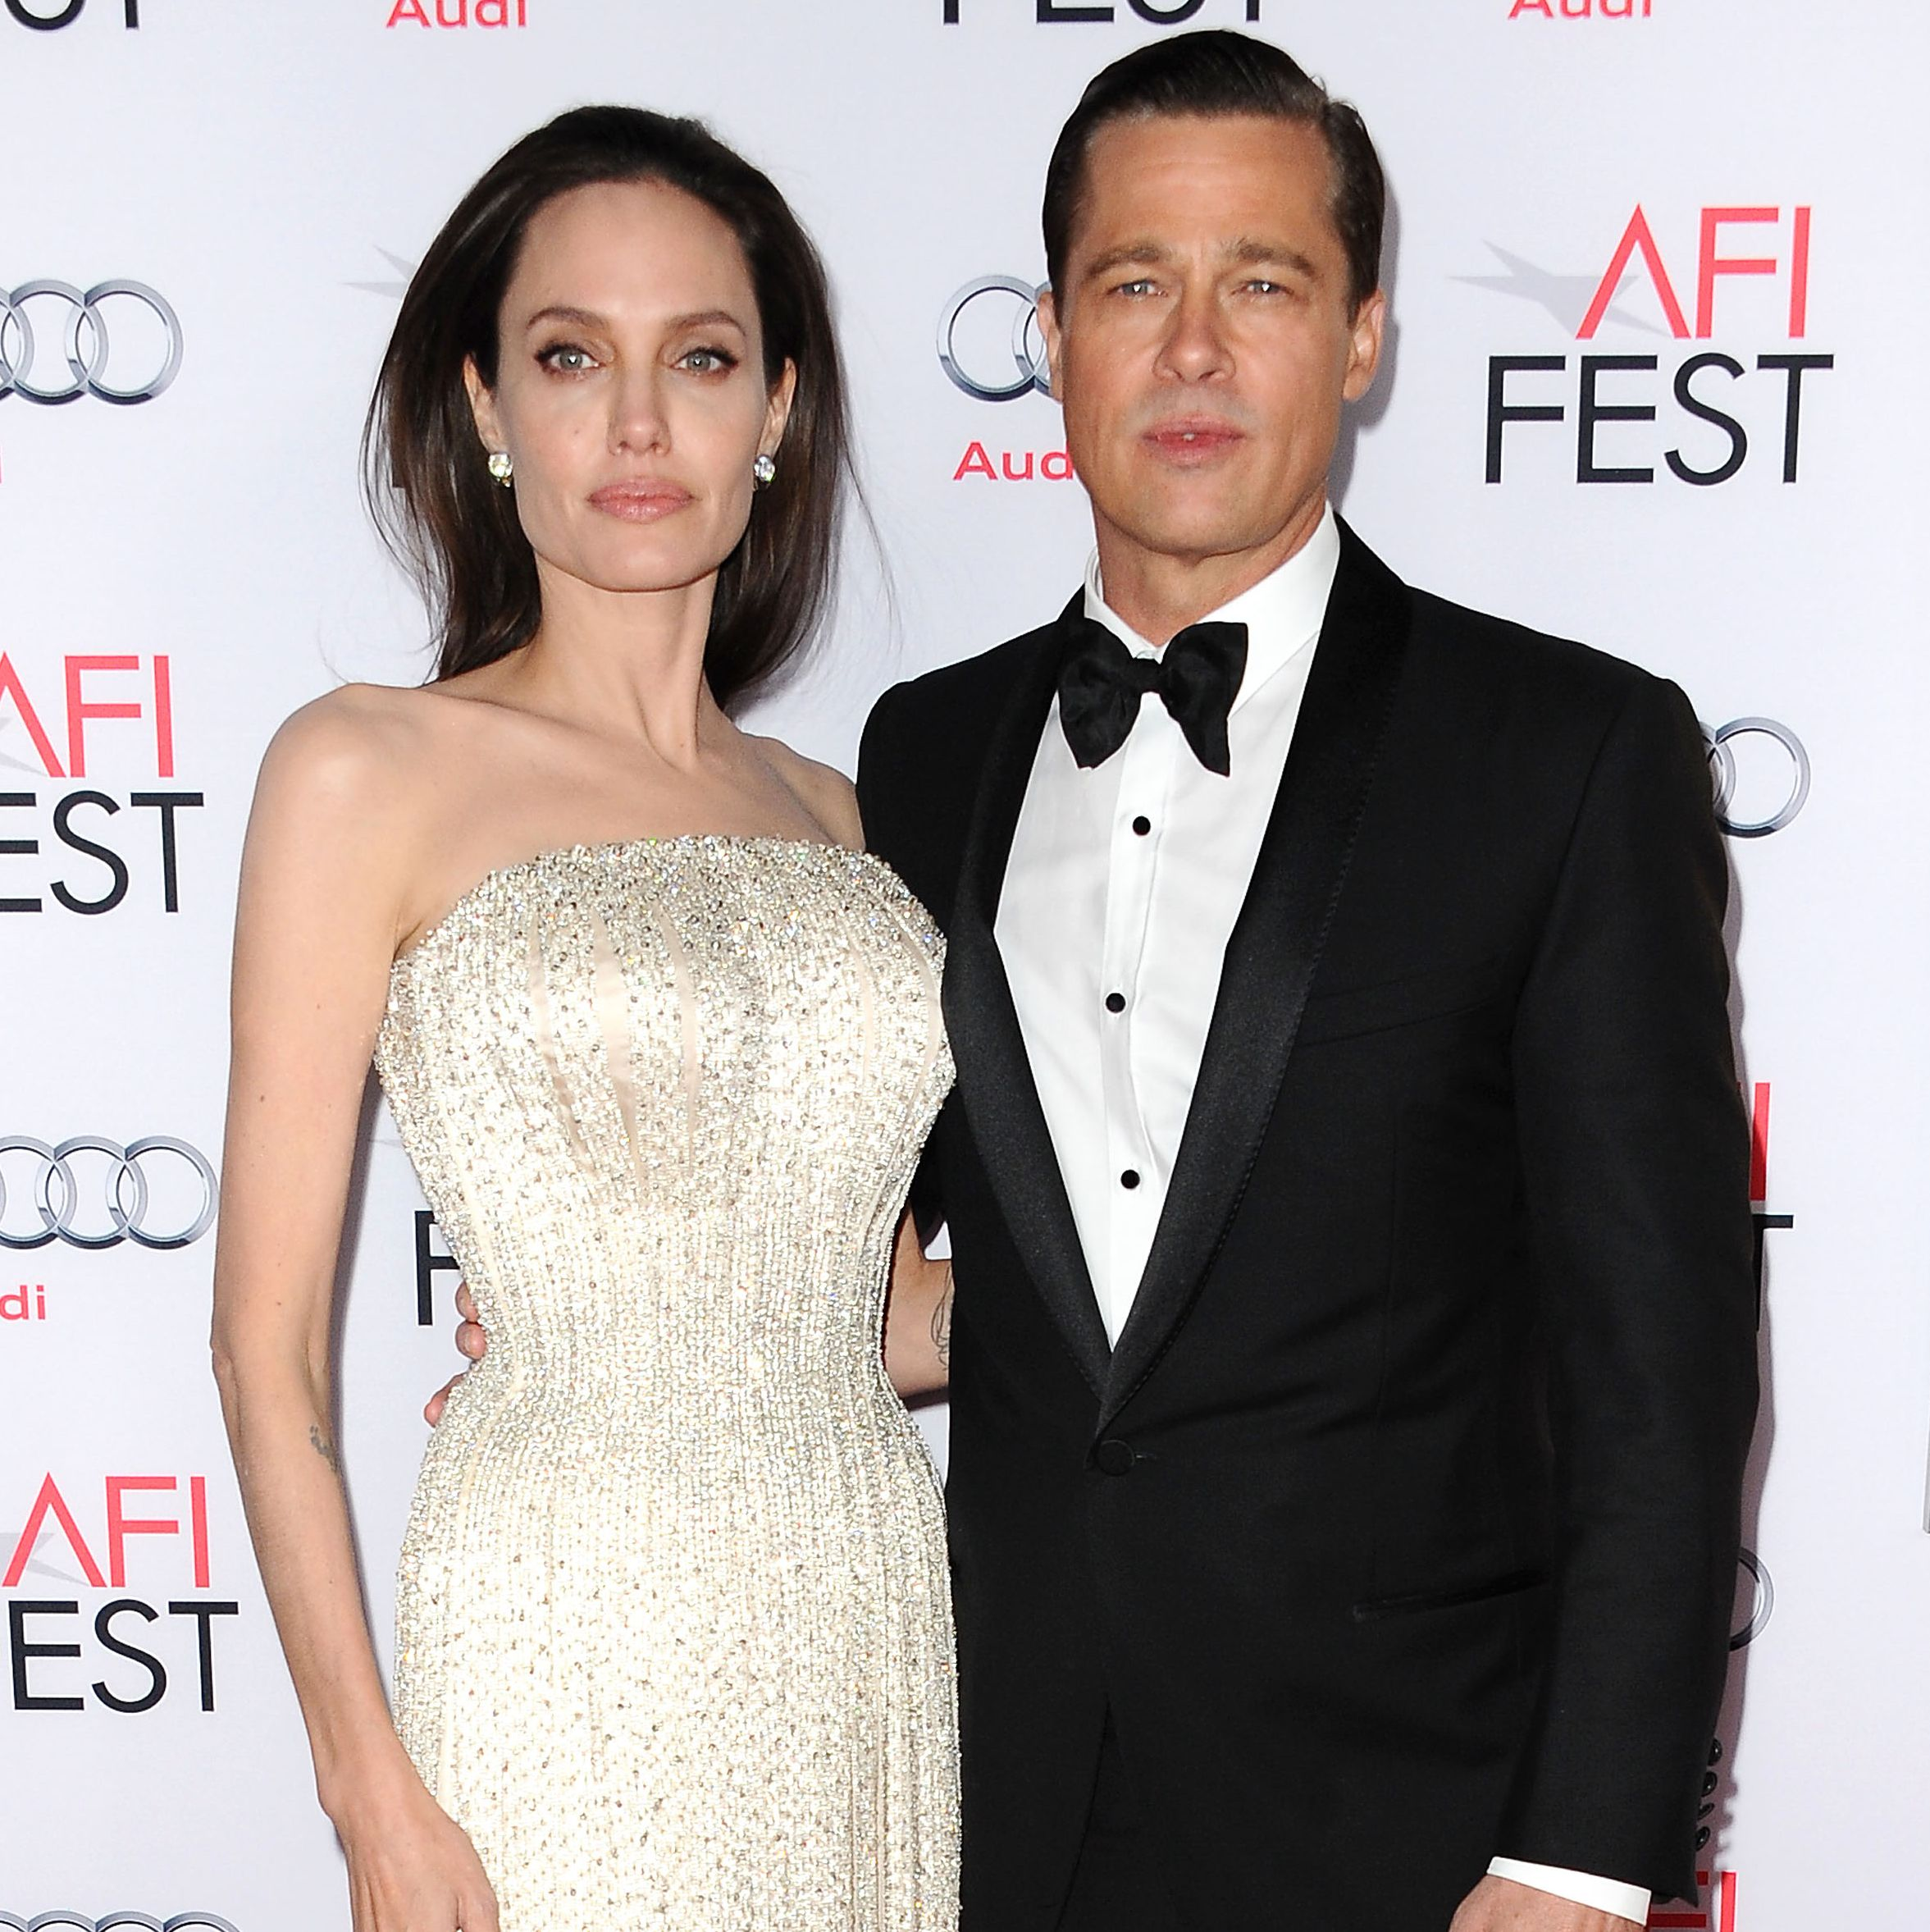 Angelina Jolie and Brad Pitt Brangelina got some criticism when they went public following Brad's split from Jennifer Aniston and later confirmed that they fell in love while Brad was still married. But the couple proved they had staying power.